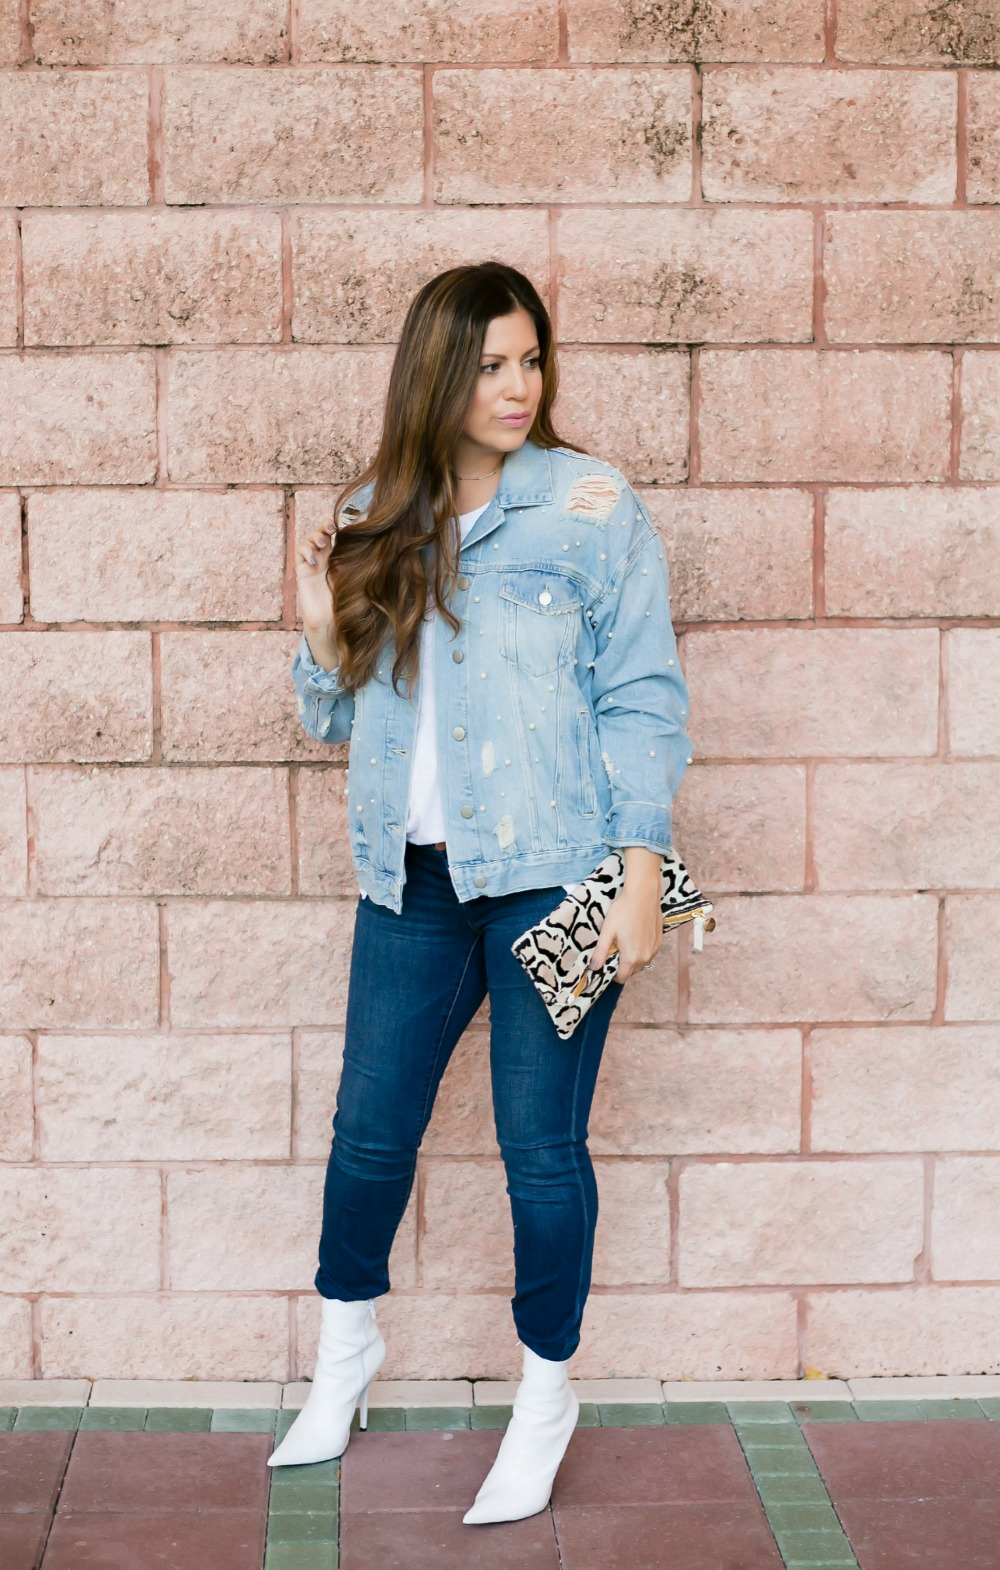 denim on denim _ white booties for fall _ fall style by Sunflowers and Stilettos blog